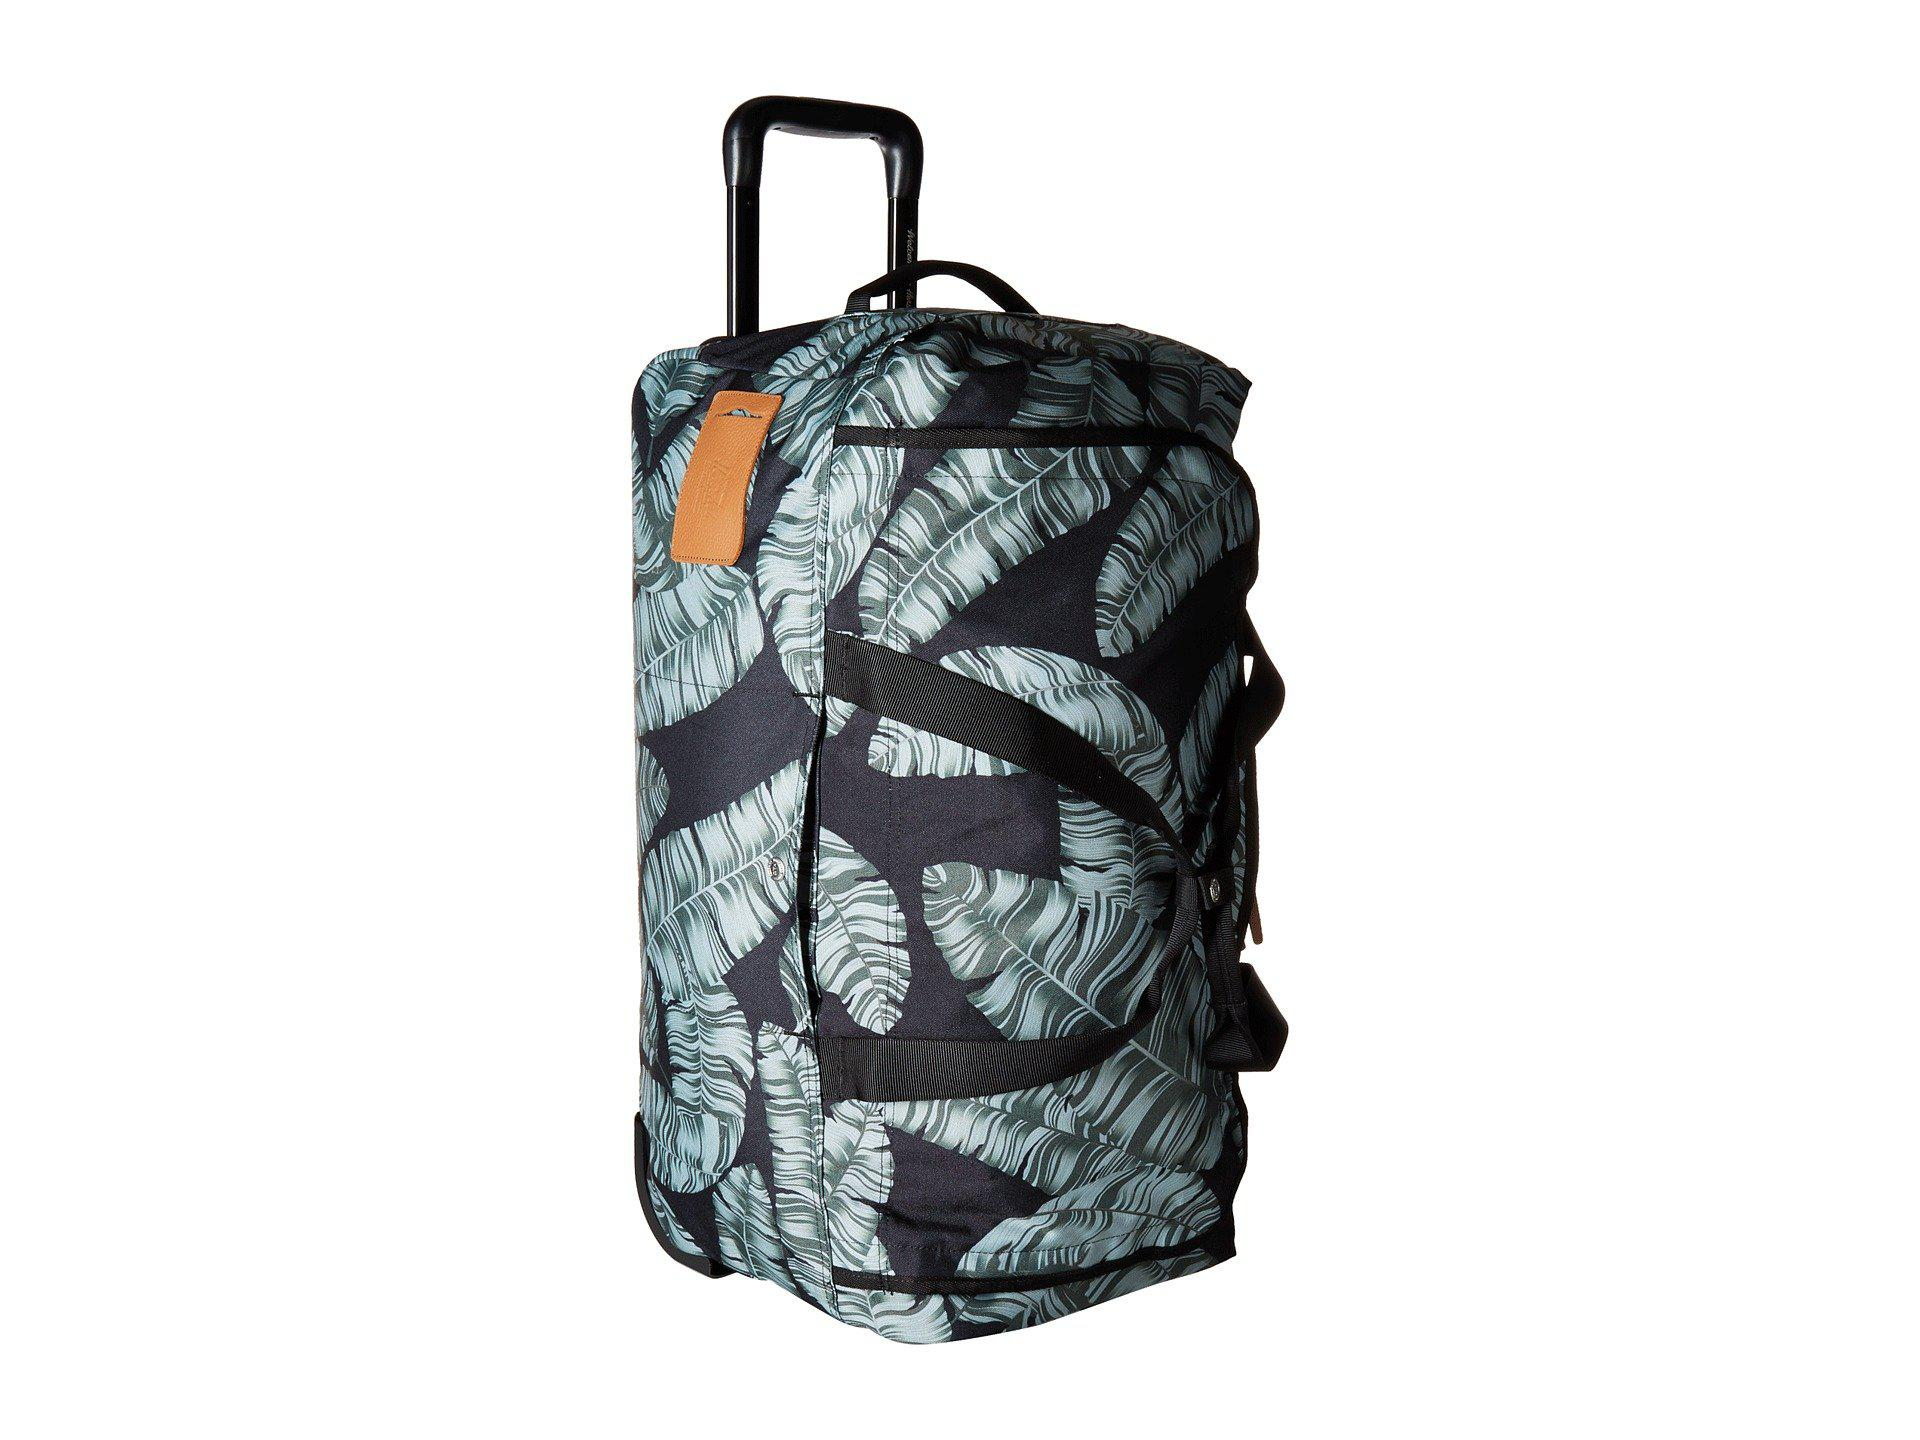 Lyst - Herschel Supply Co. Wheelie Outfitter (black Palm) Carry On ... 72f323f26f